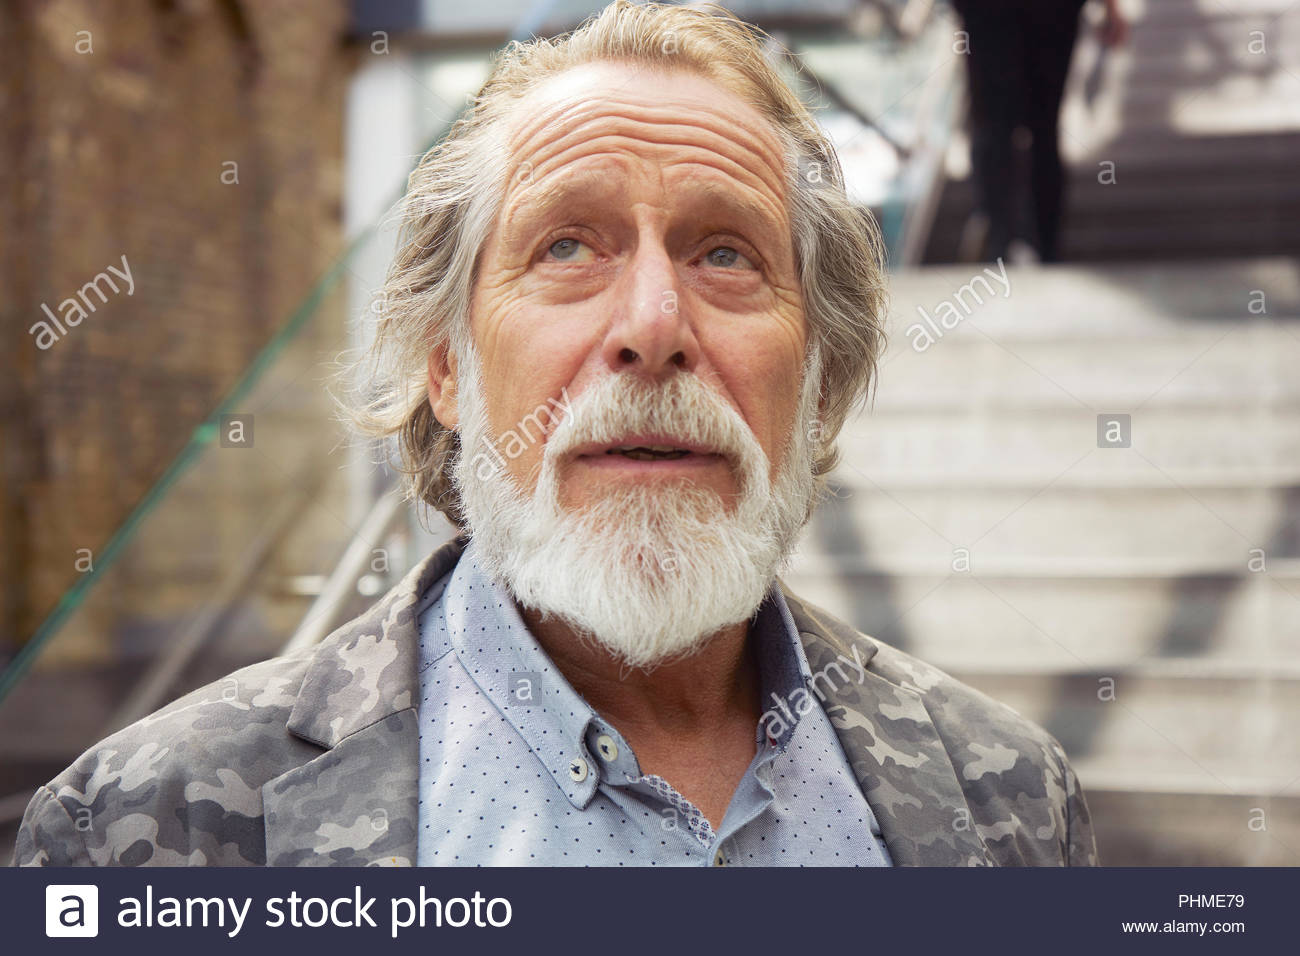 Portrait of senior man looking up Photo Stock